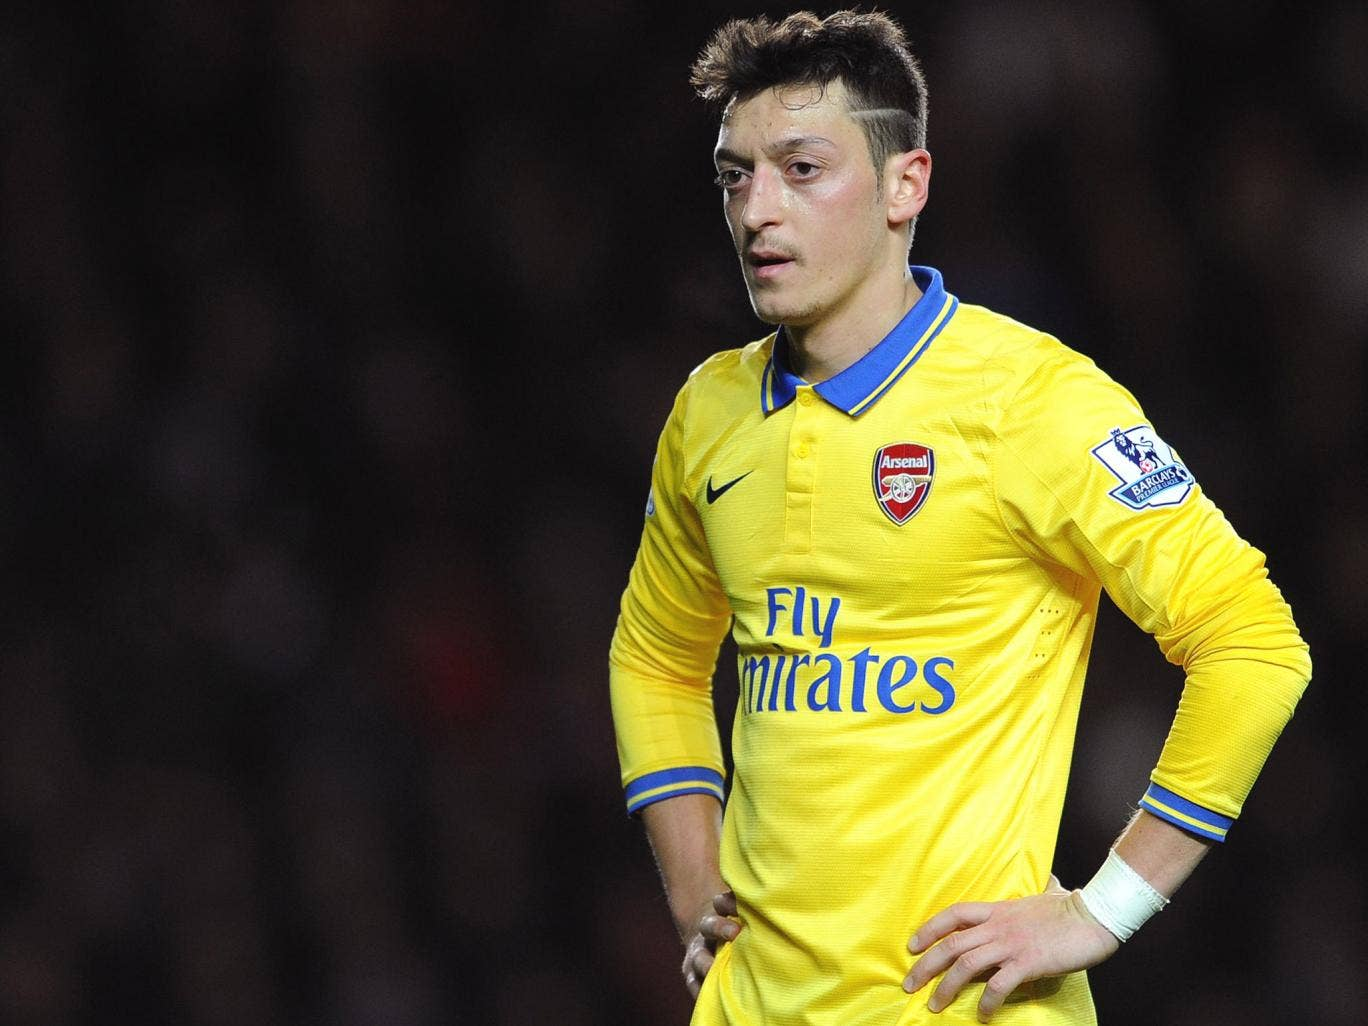 Mesut Özil 'doesn't come from a small club, he is used to pressure,' said Arsène Wenger